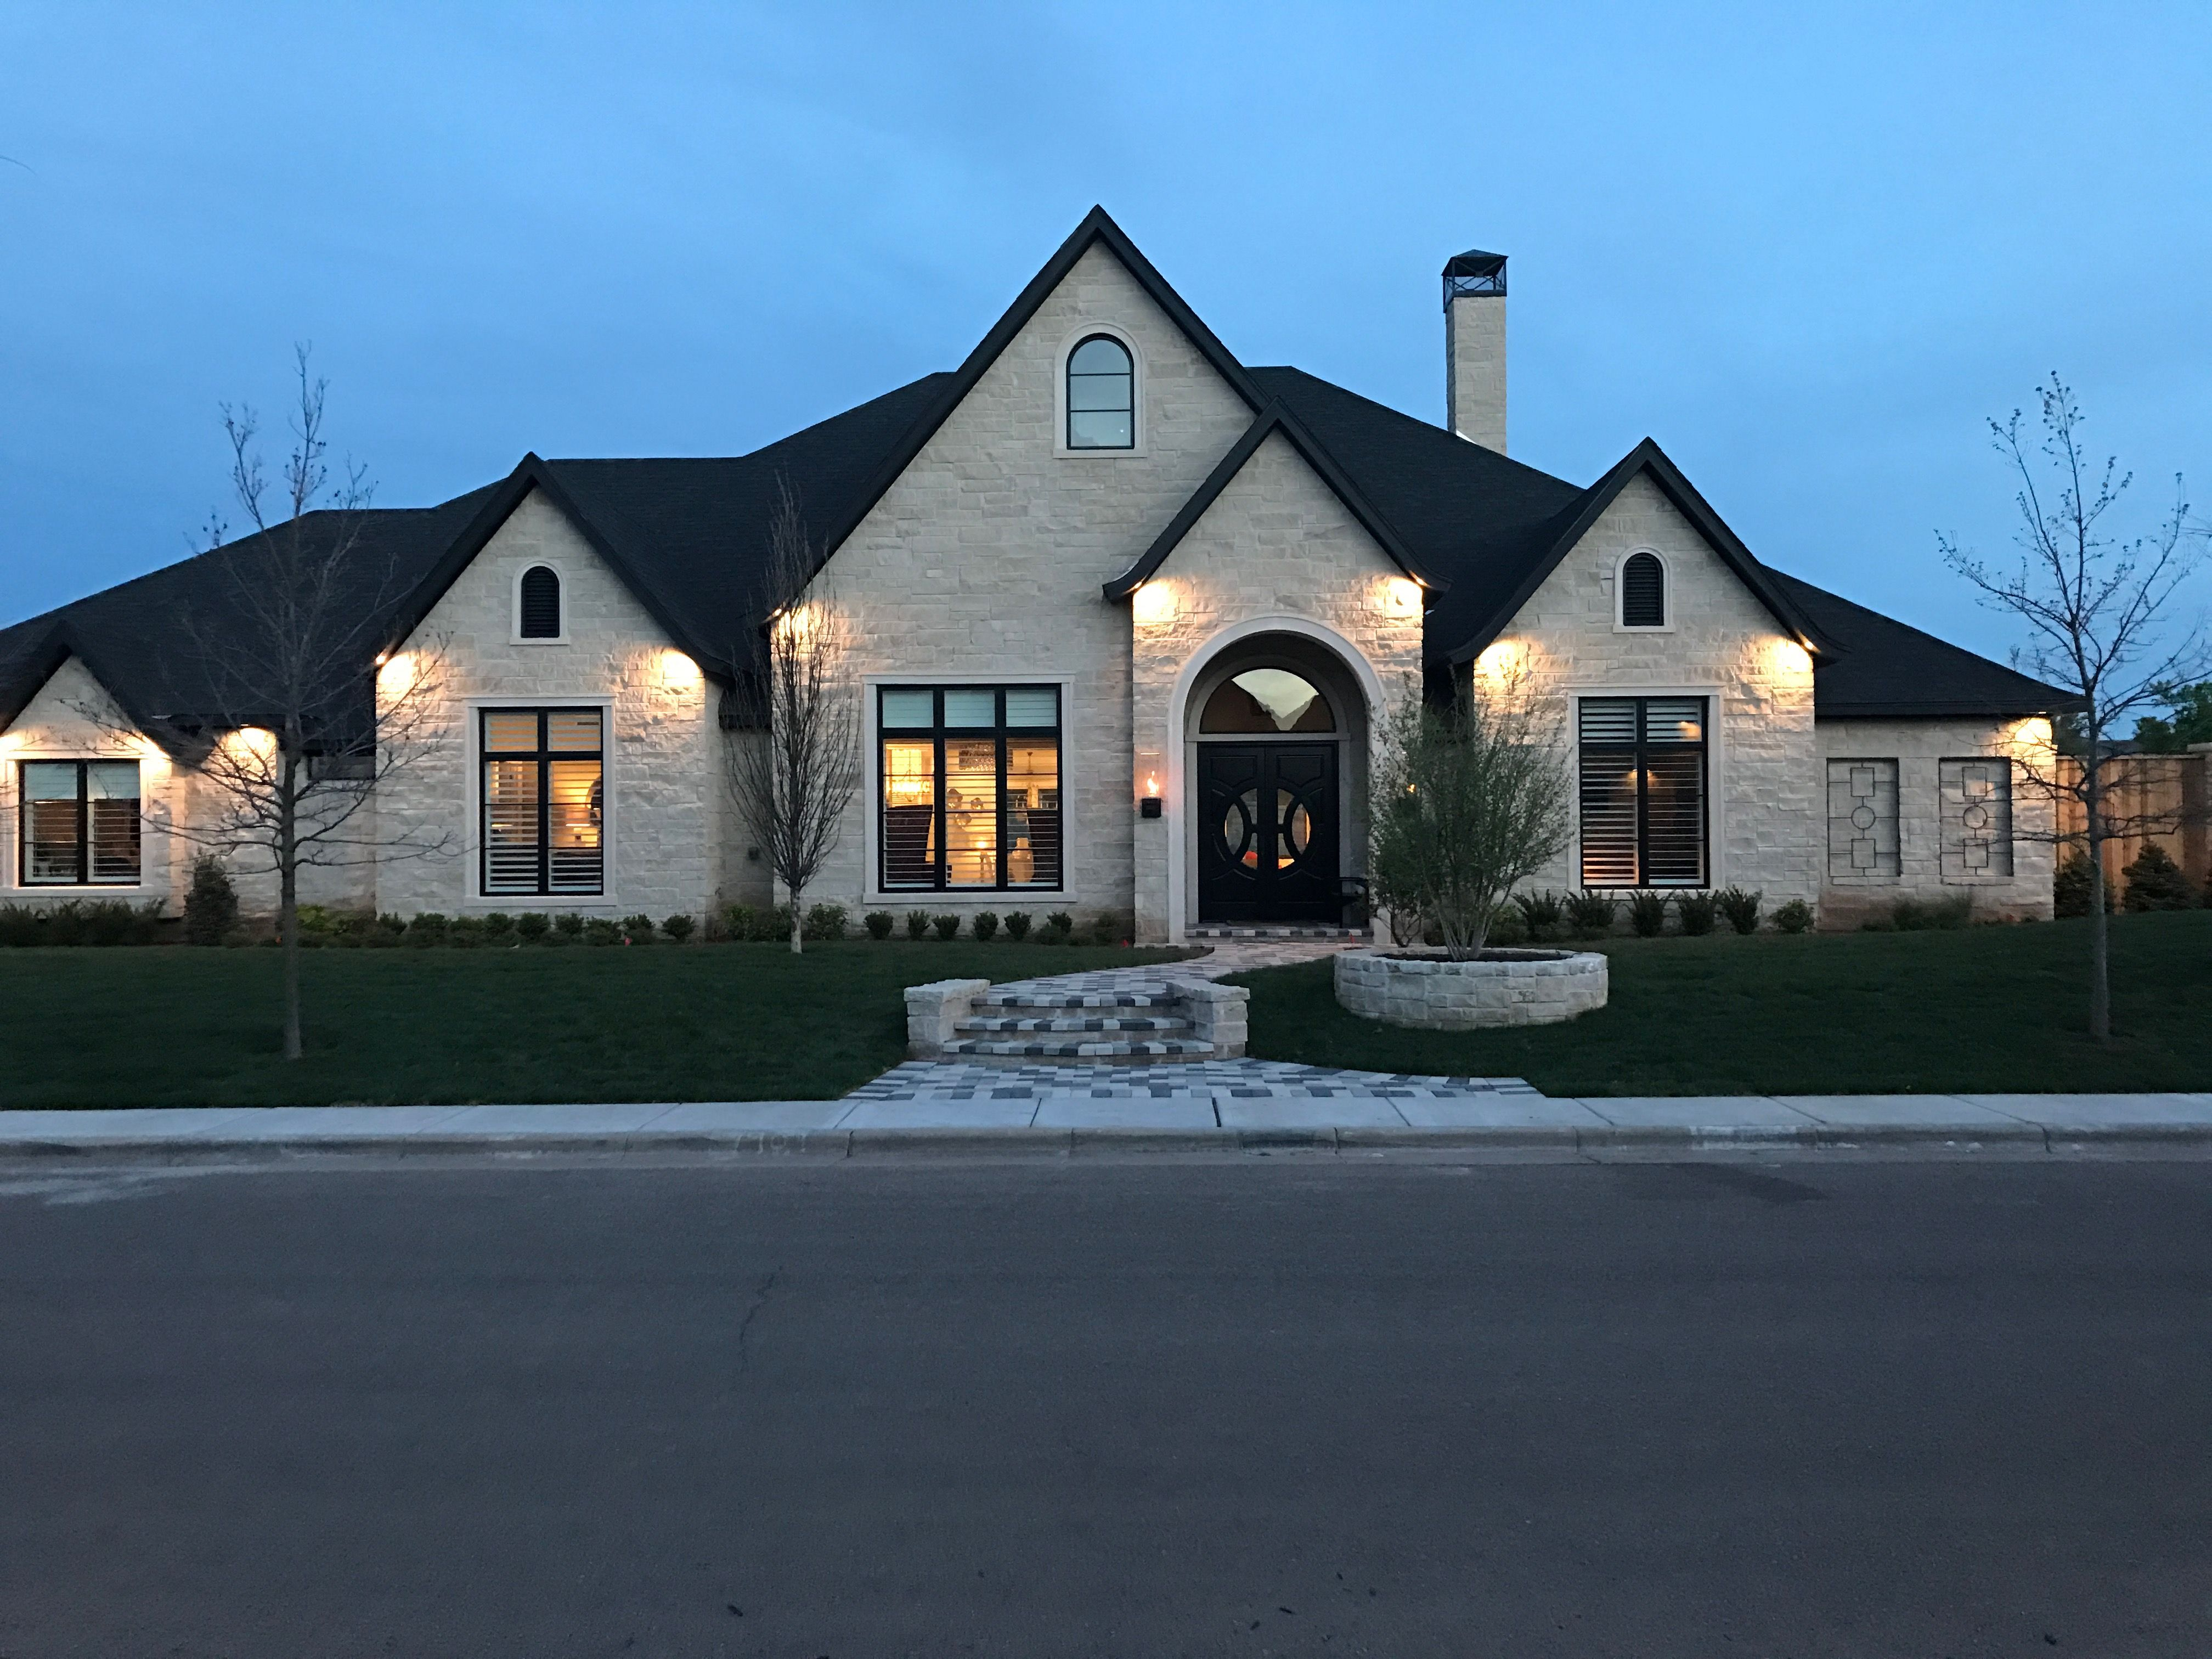 White Stone With Black Trim House Ideas In 2019 Exterior Houses Facade Stucco